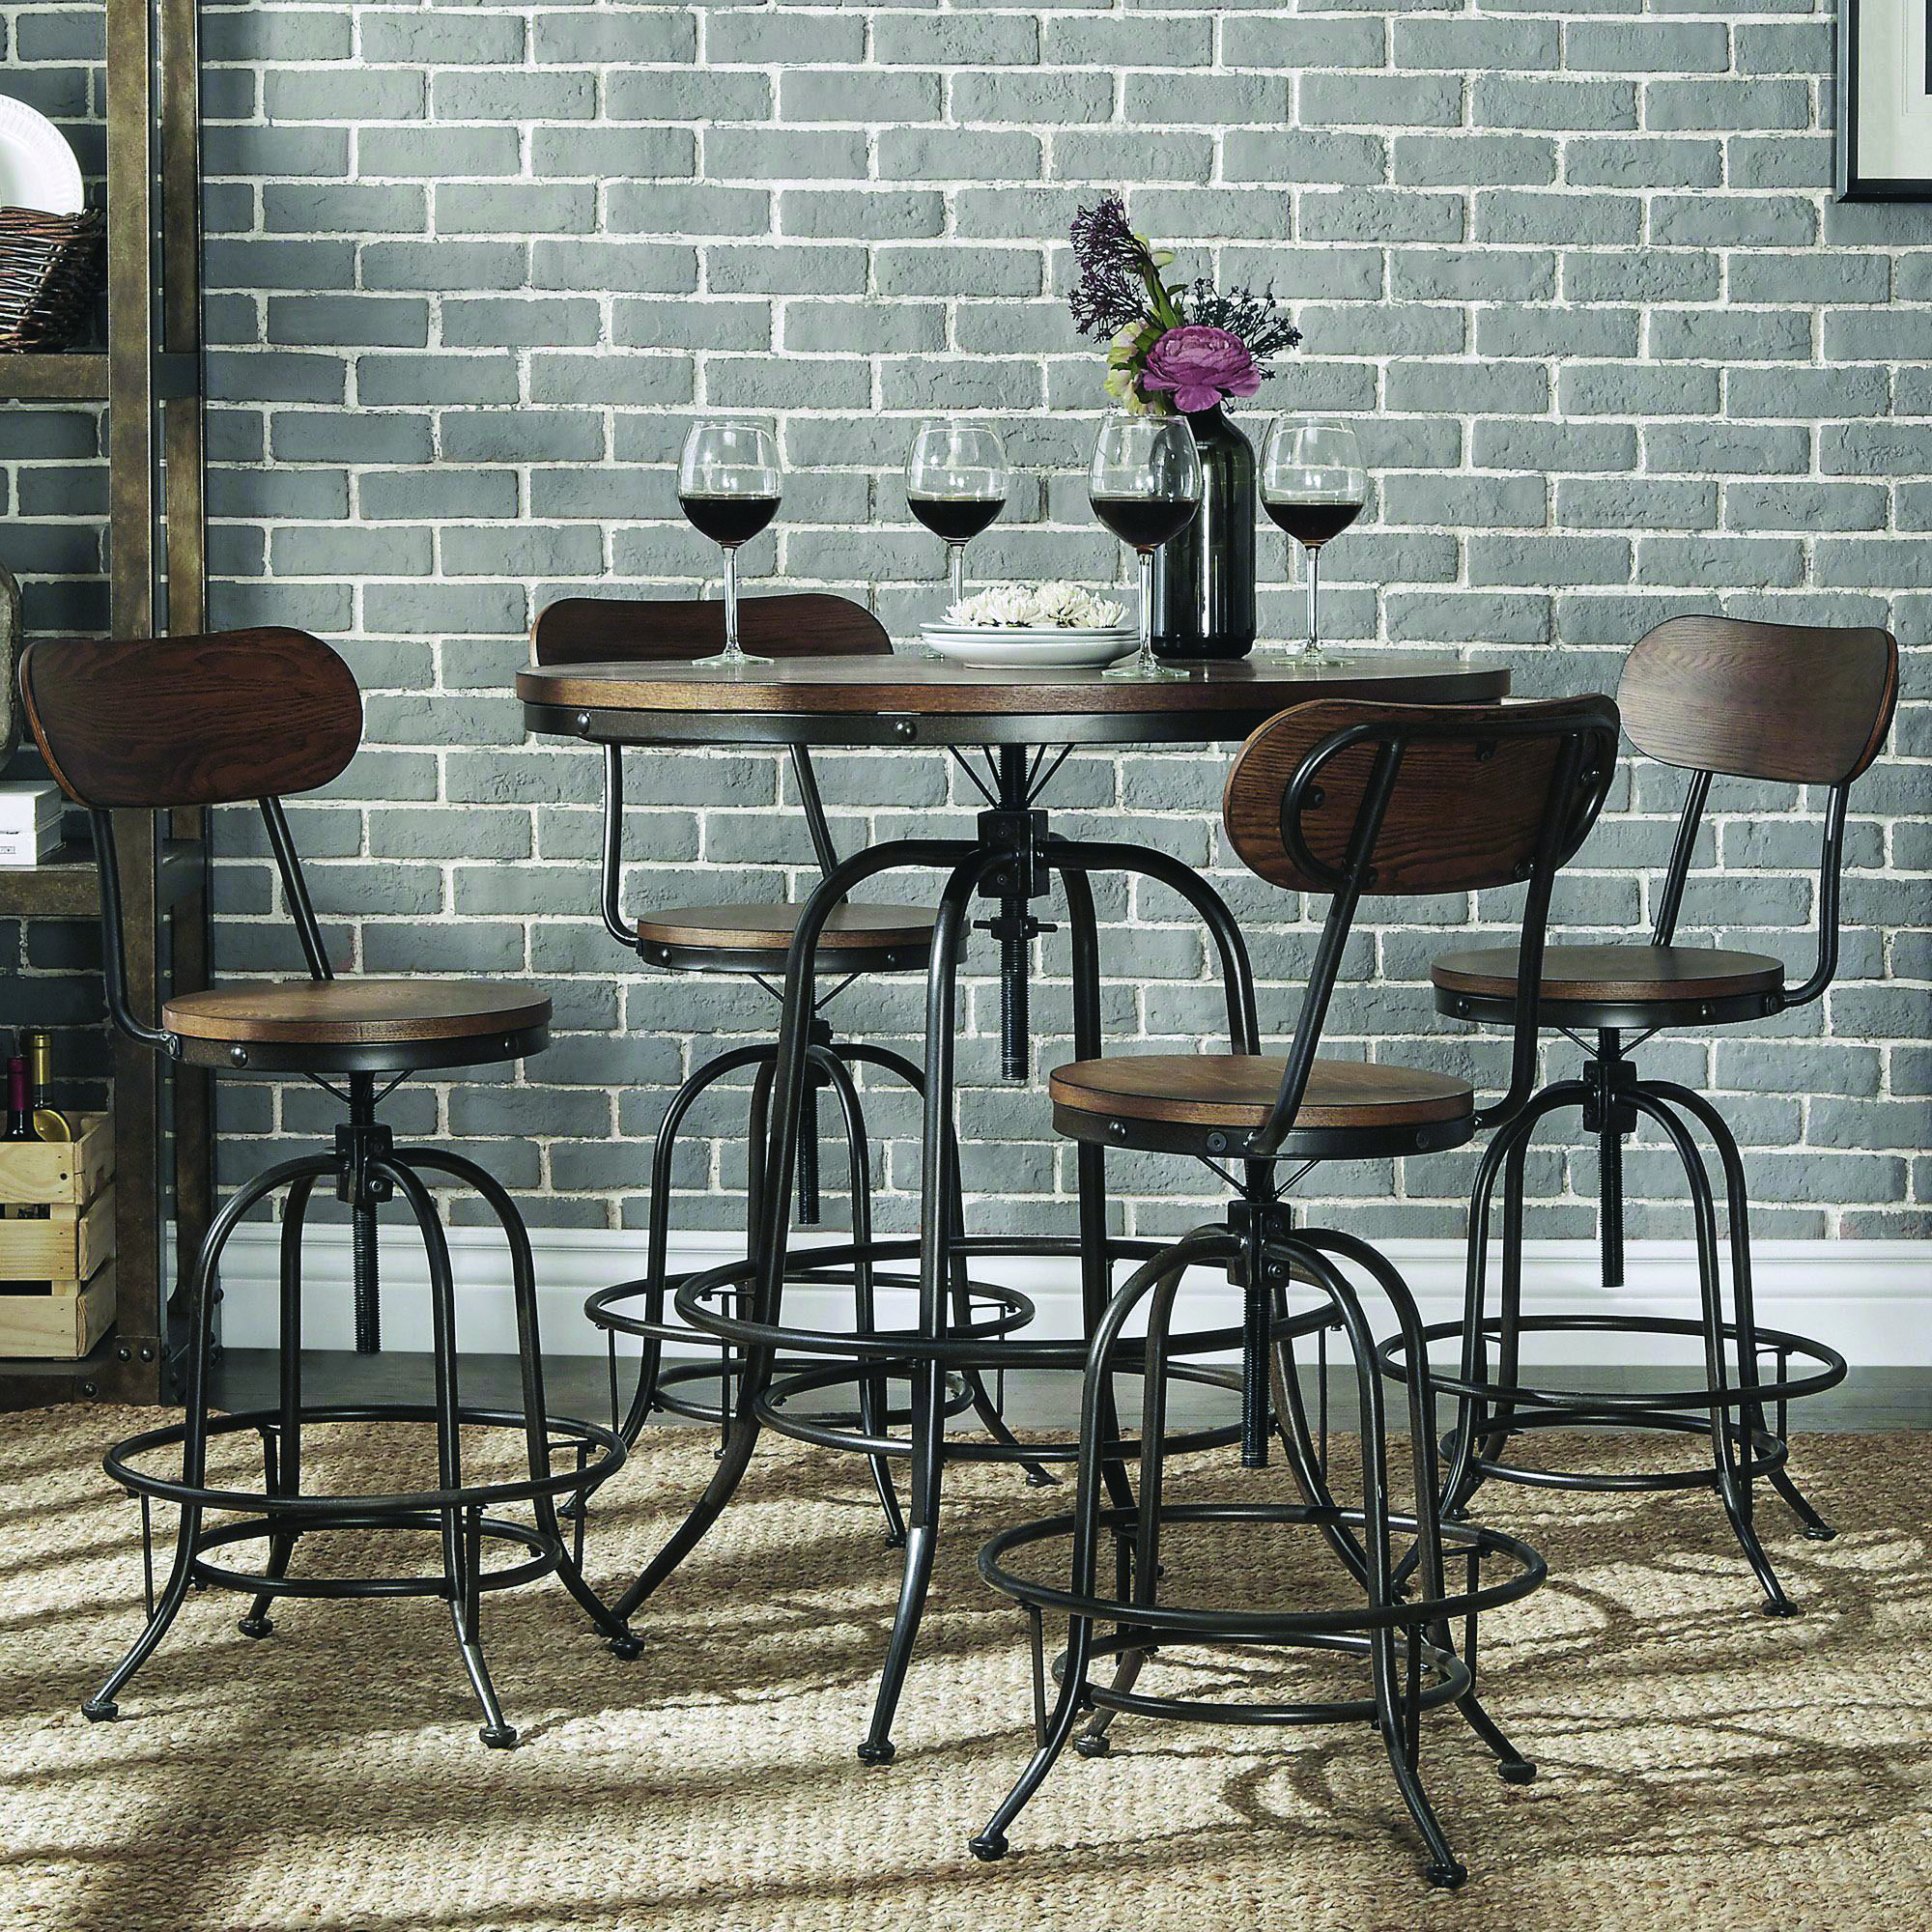 8 Small Cooking Area Table Suggestions For Your Property With Images Pub Table Sets Pub Table And Chairs Pub Set